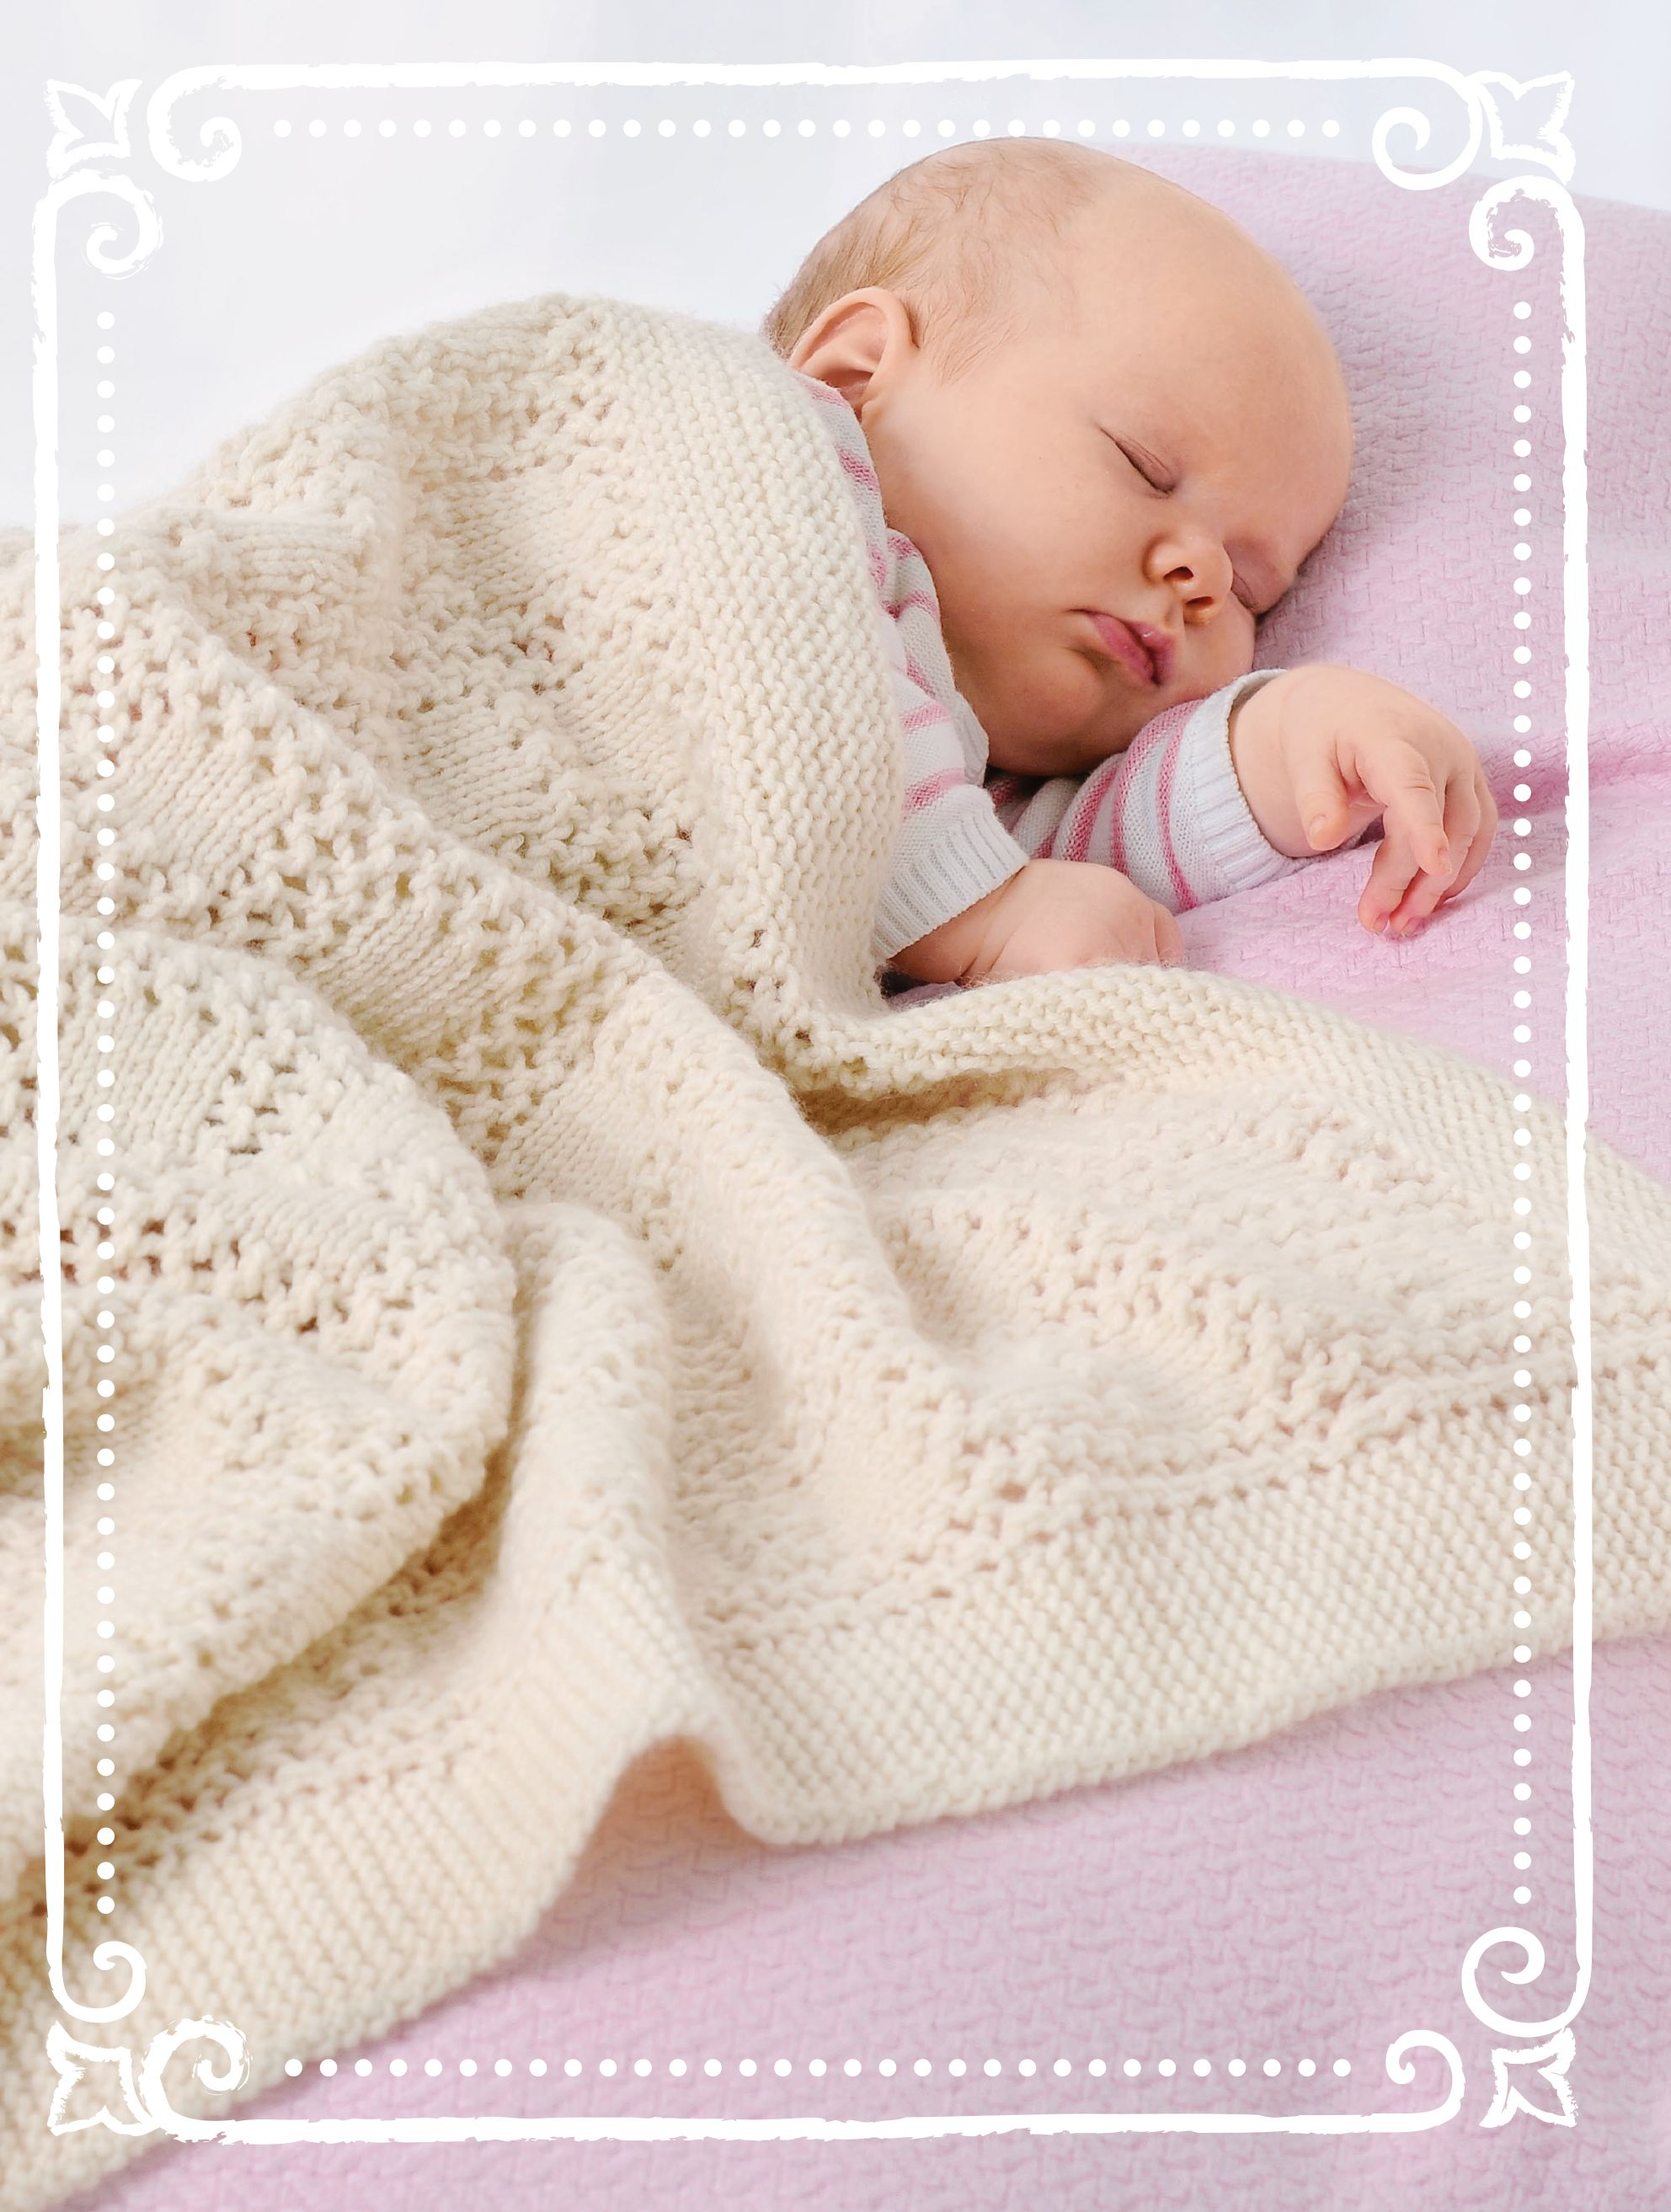 crafting made simple! | Stricken für baby, Makerist und Strick